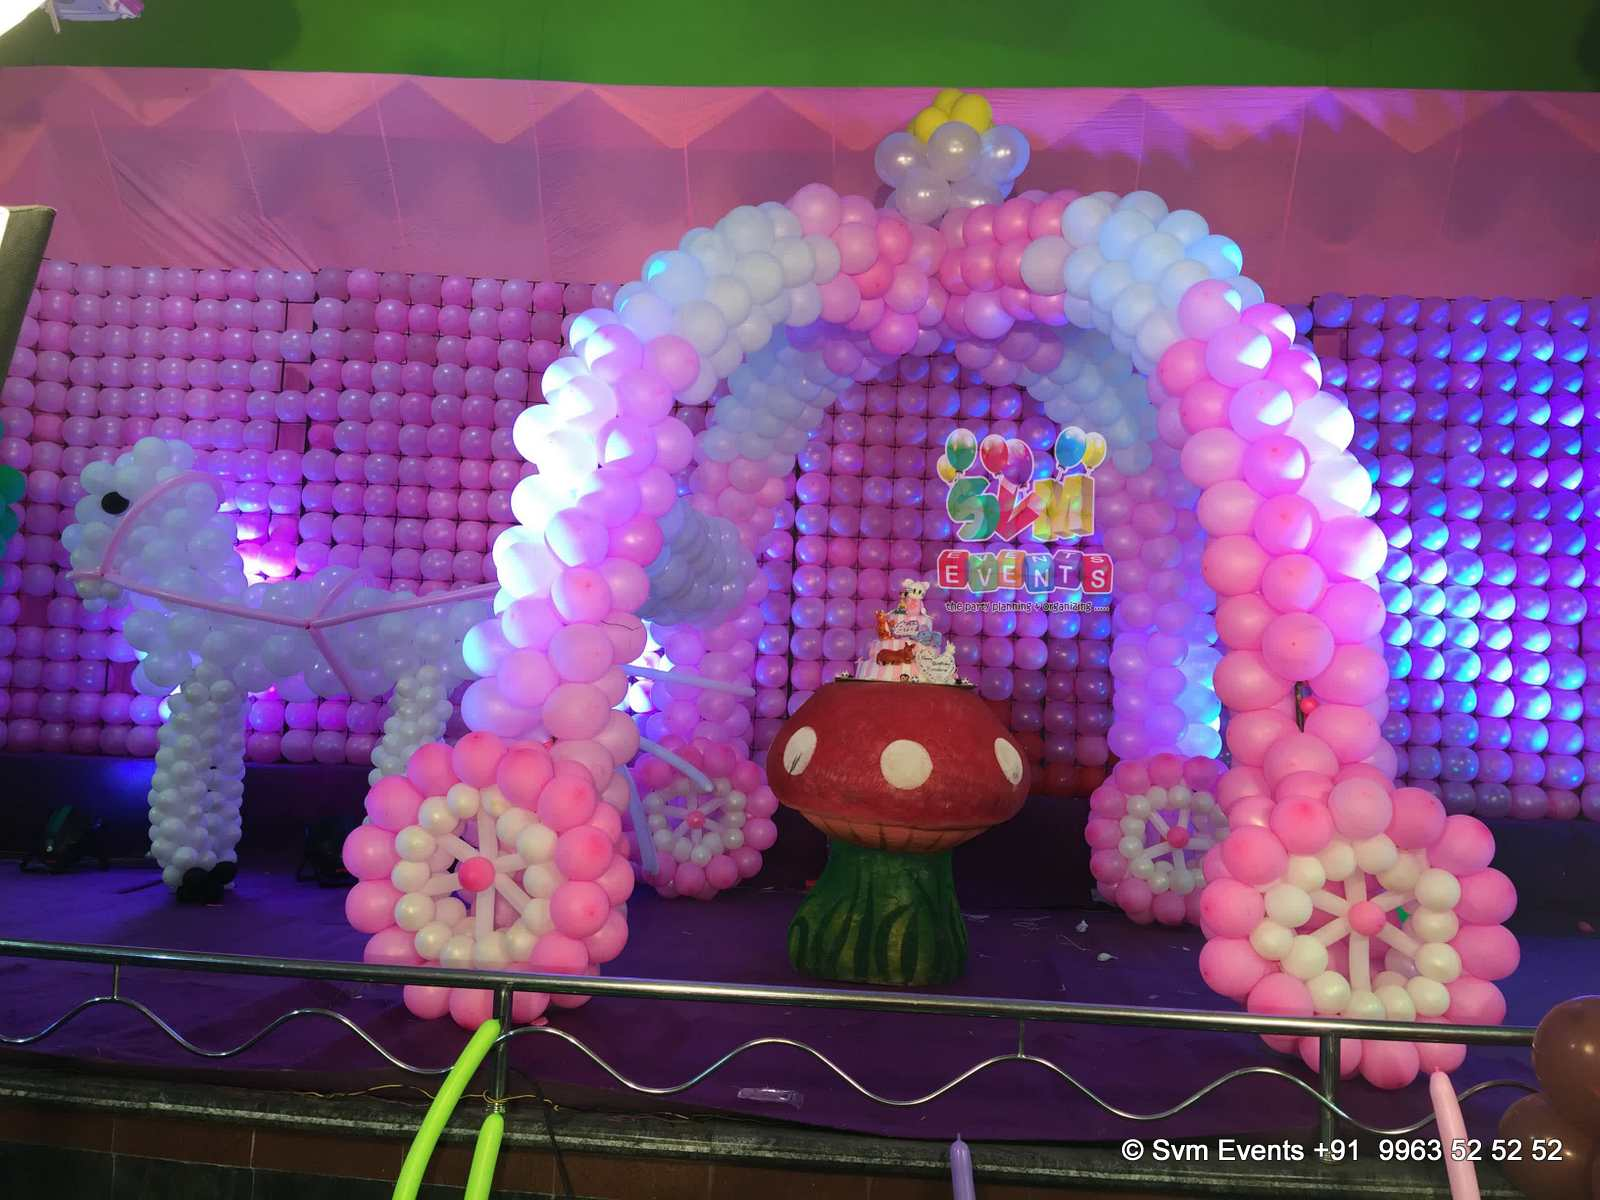 Svm Events Chariot theme for kids 1st Birthday Party and Balloon